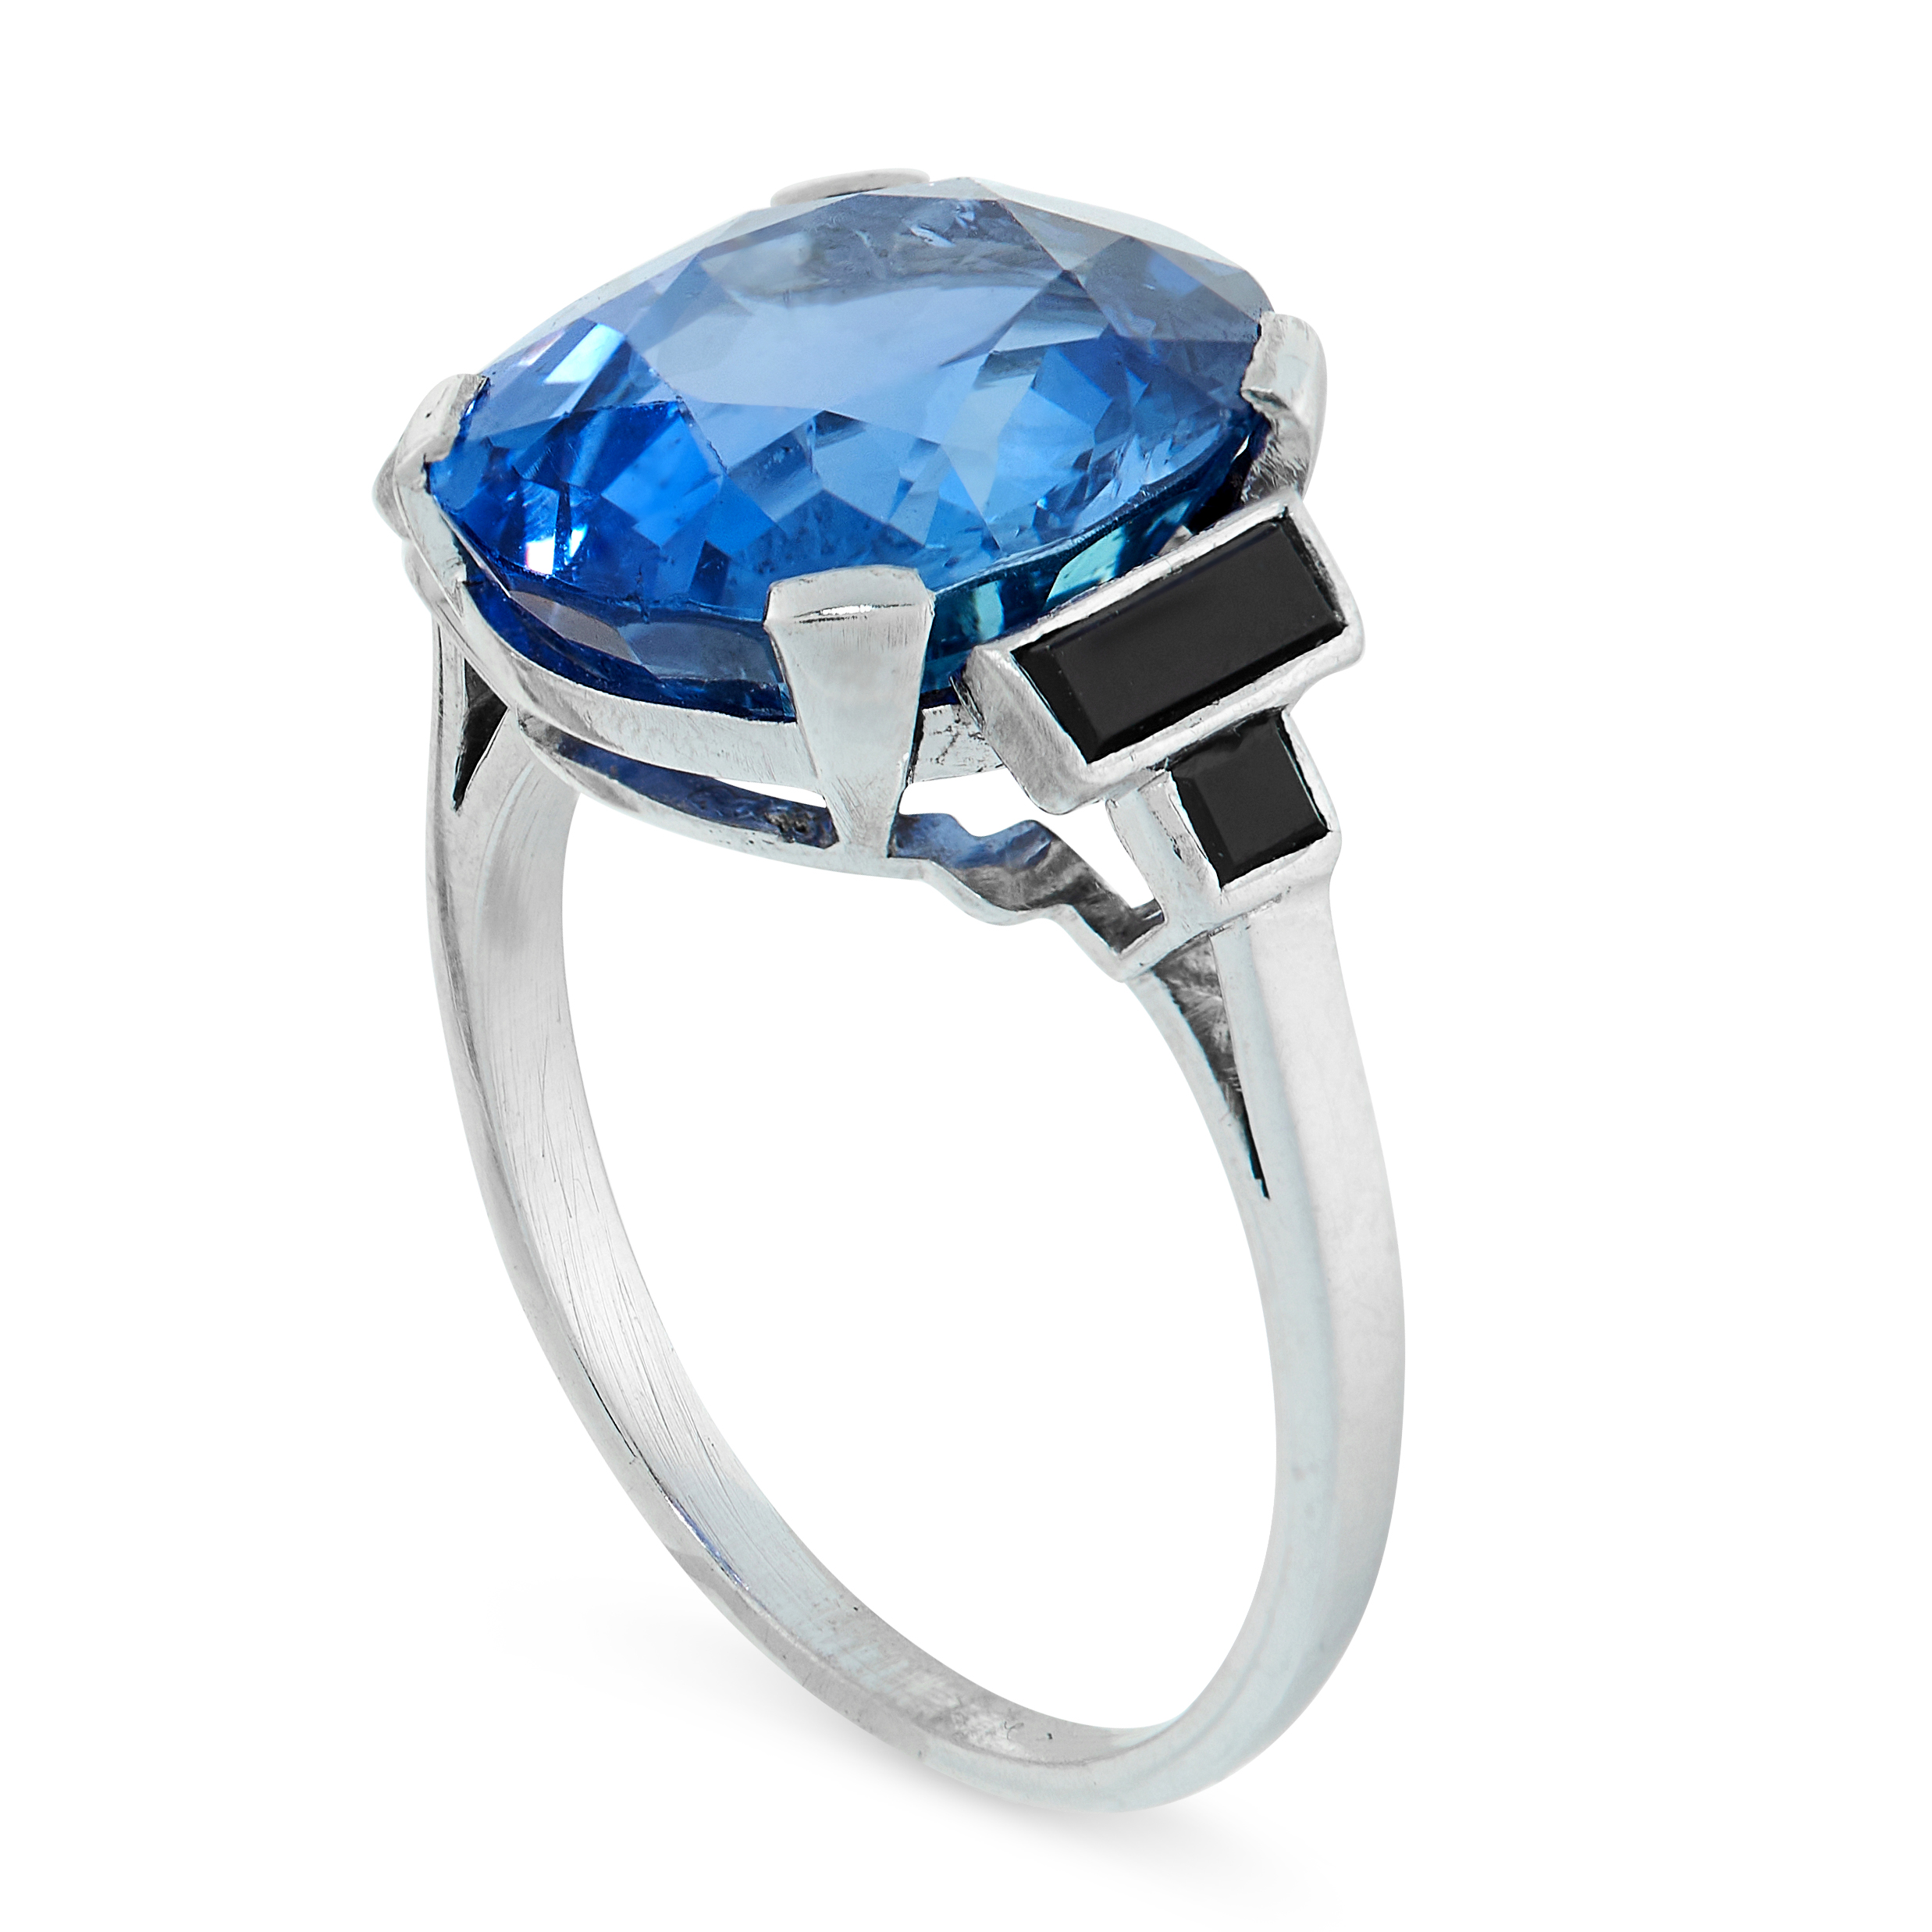 CEYLON NO HEAT SAPPHIRE AND ONYX RING comprising of an oval cut sapphire of 8.66 carats between - Image 2 of 2